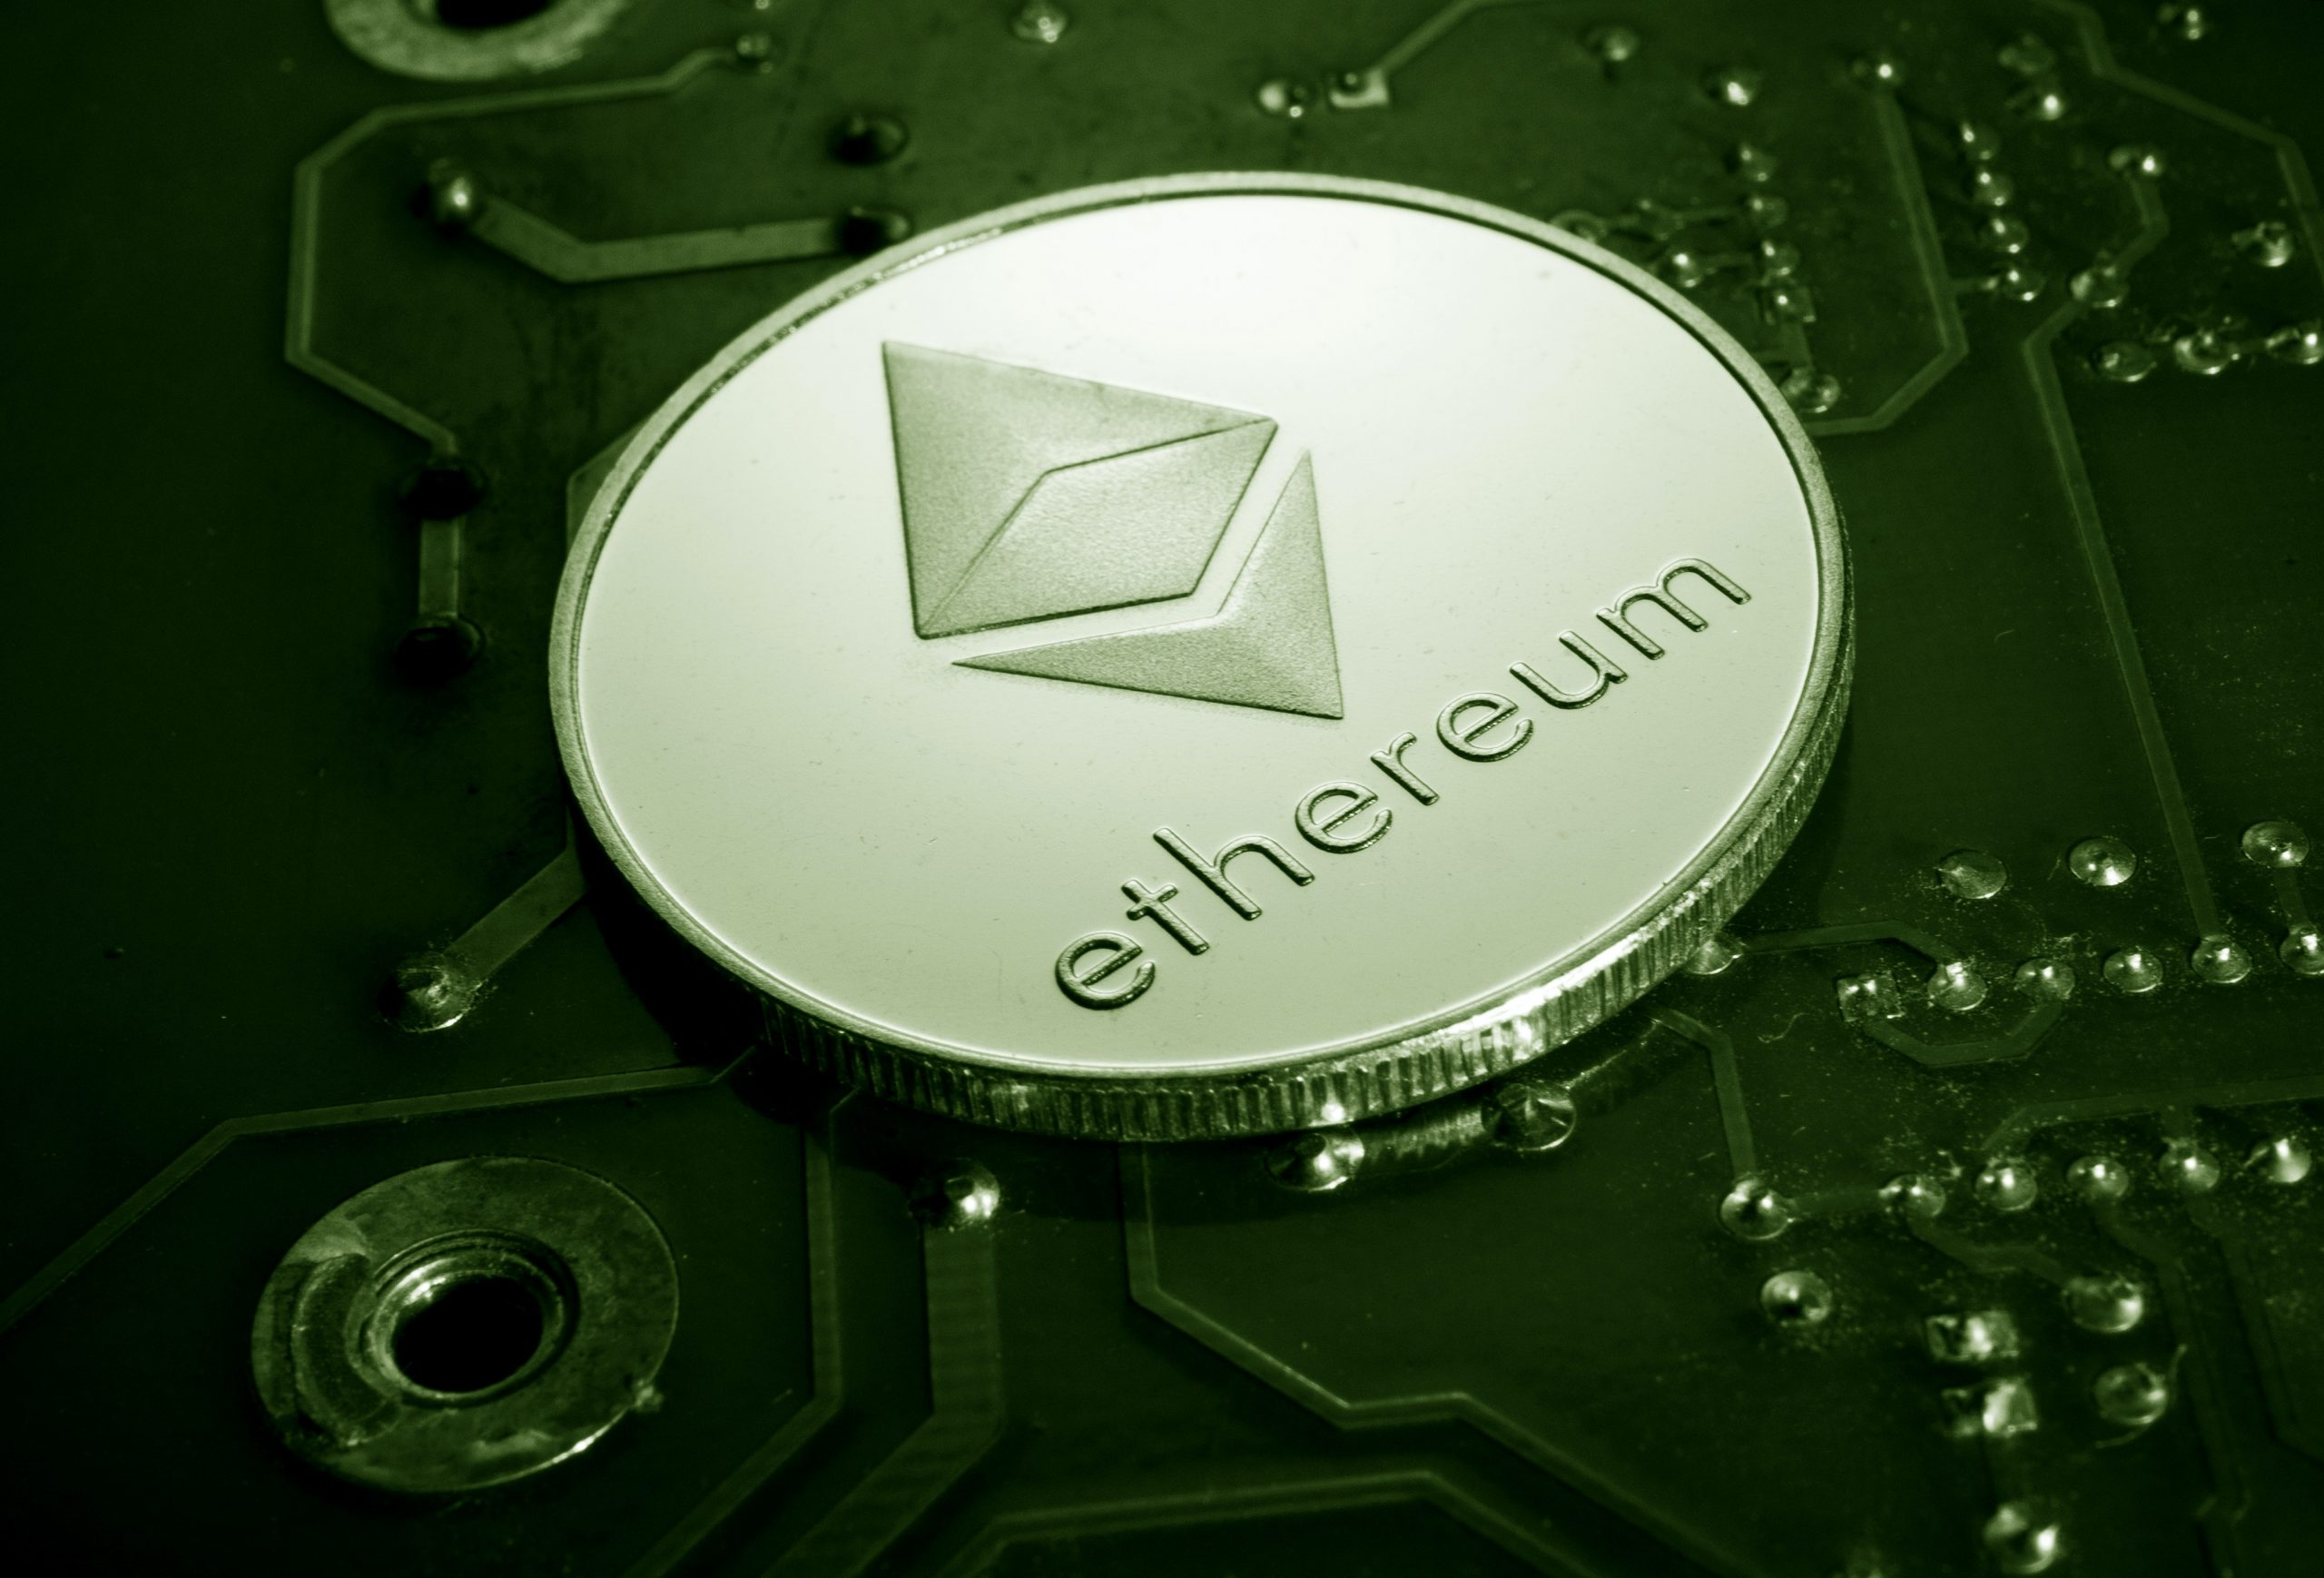 The Ethereum network's hash rate reached 646.7 TH/s